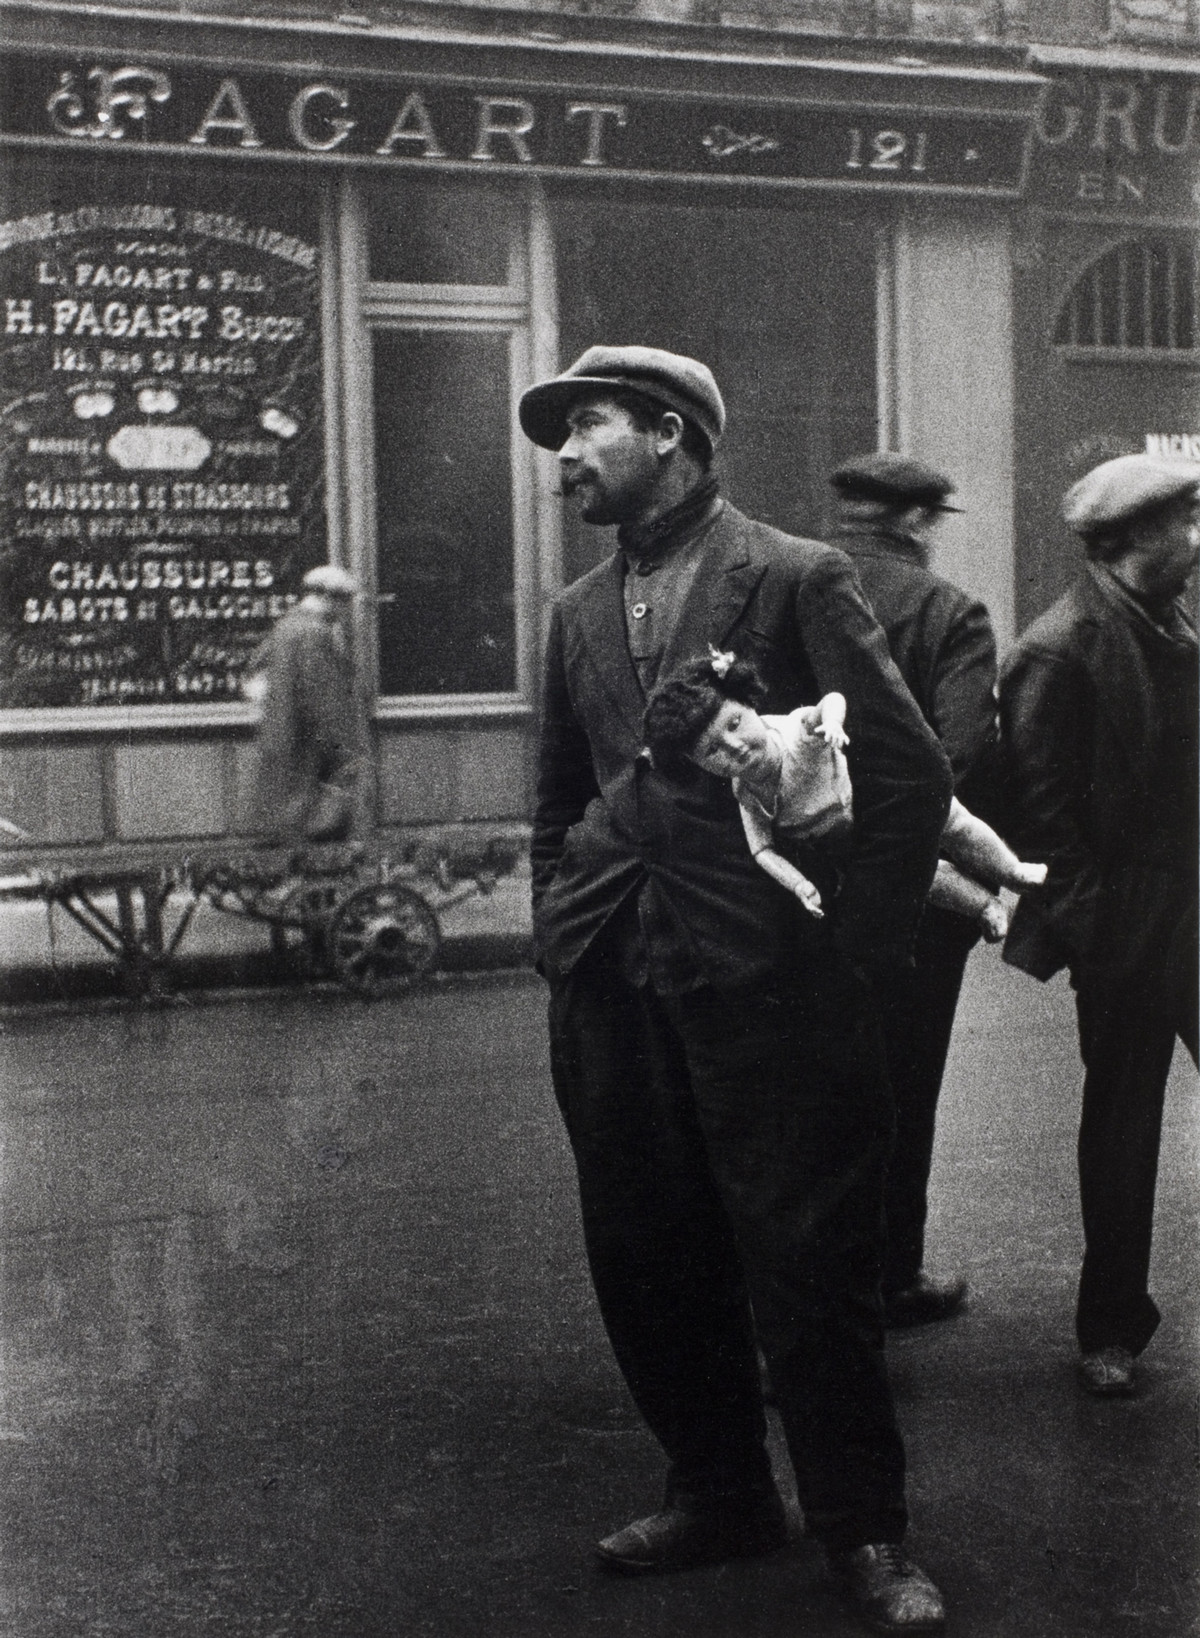 A man tries to sell a doll on the rue Saint-Denis, Paris, Ile-de-France, France, 1931.